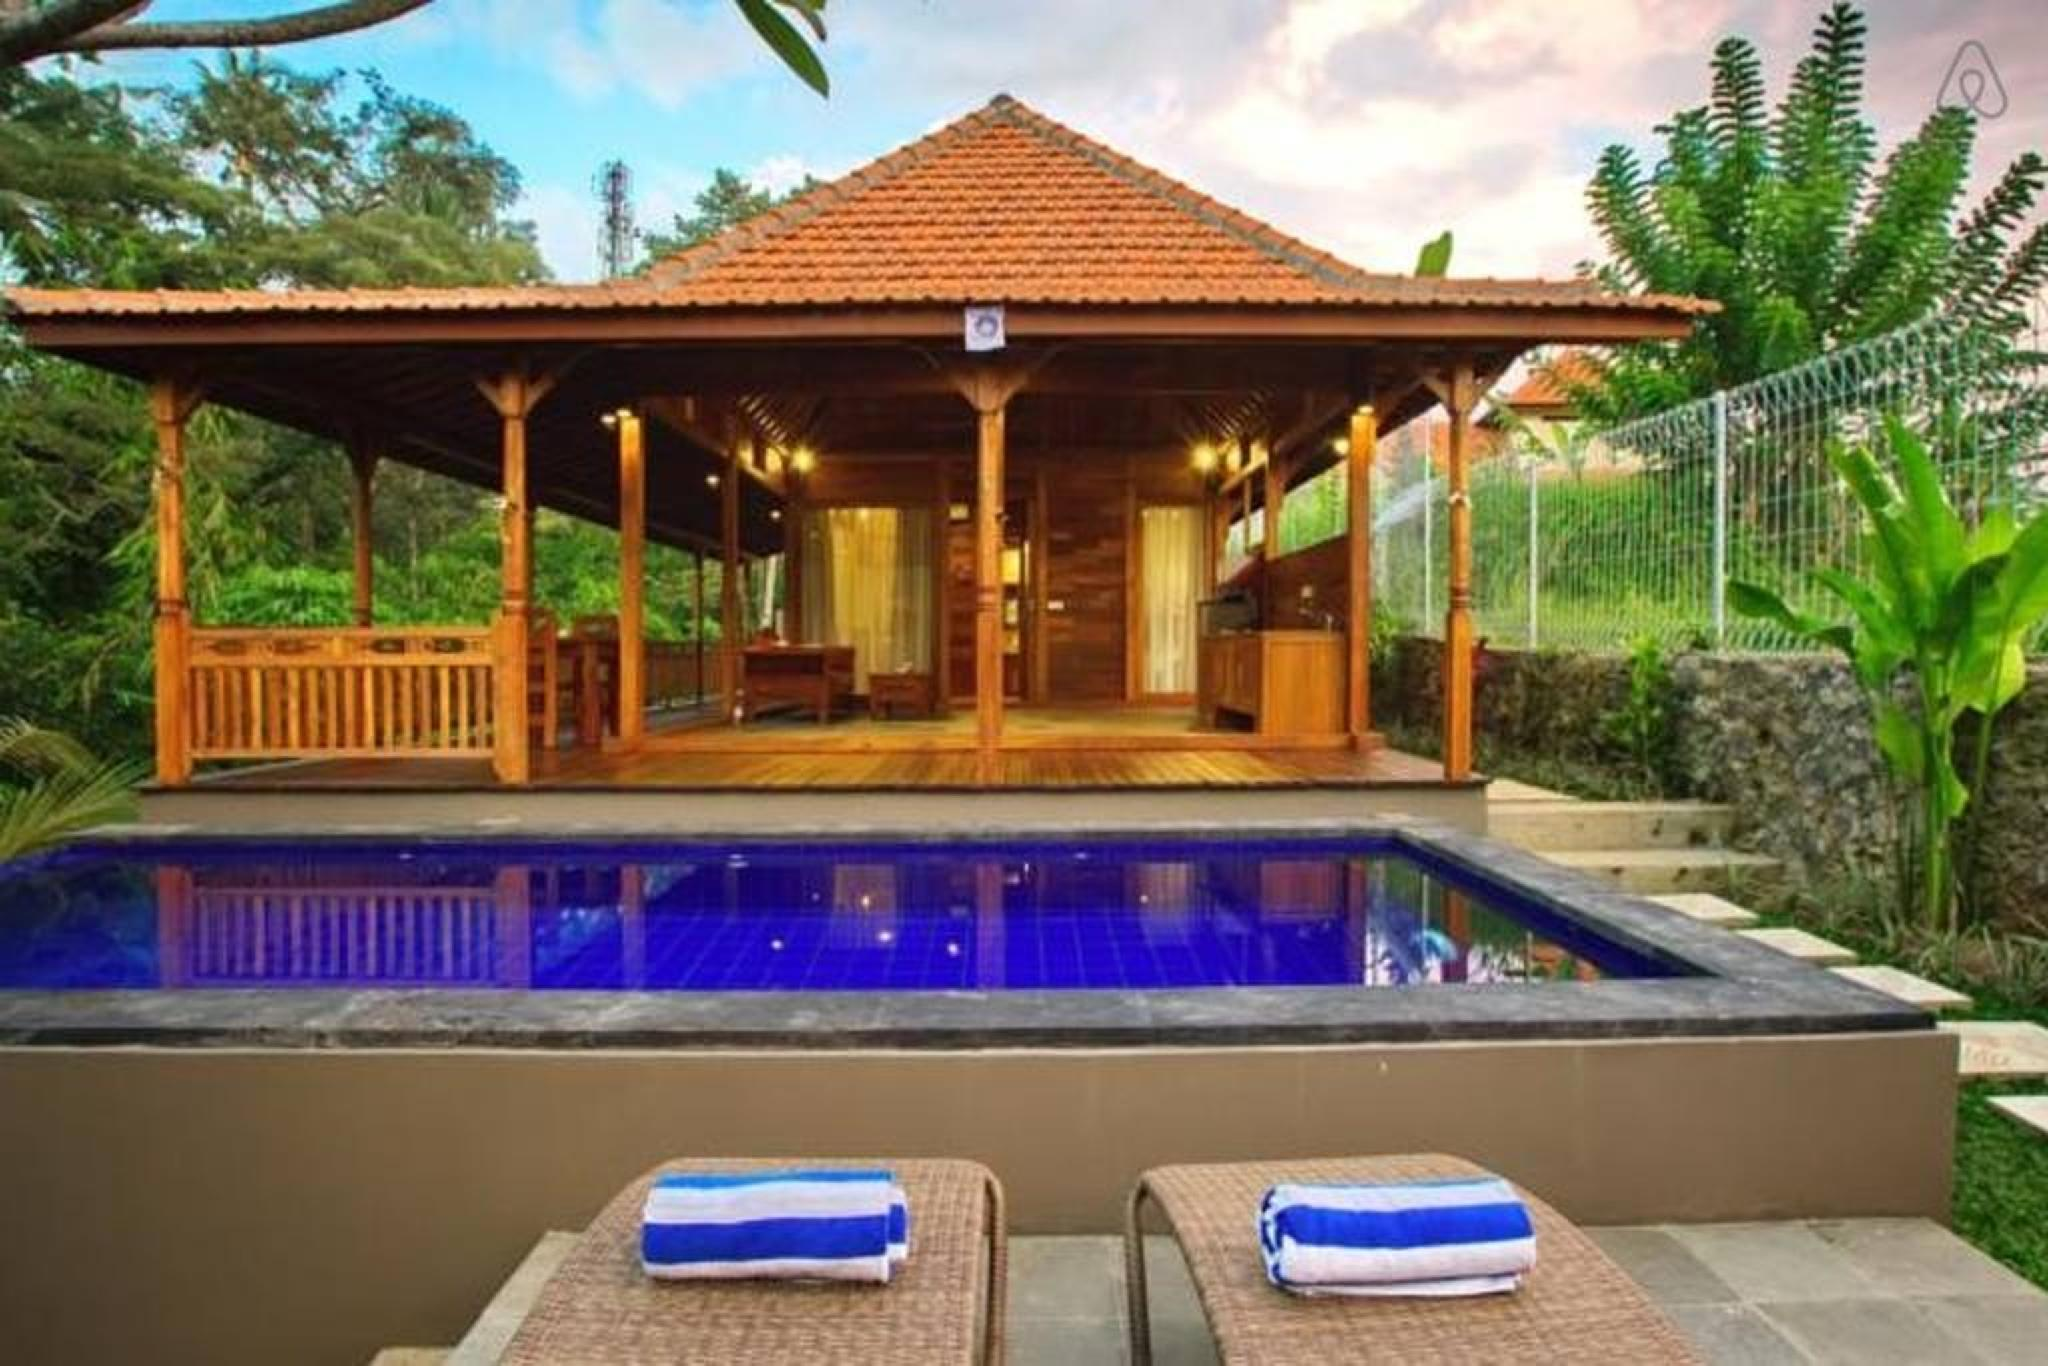 Discount 1 BDR Pool Villa Ubud in Sayan